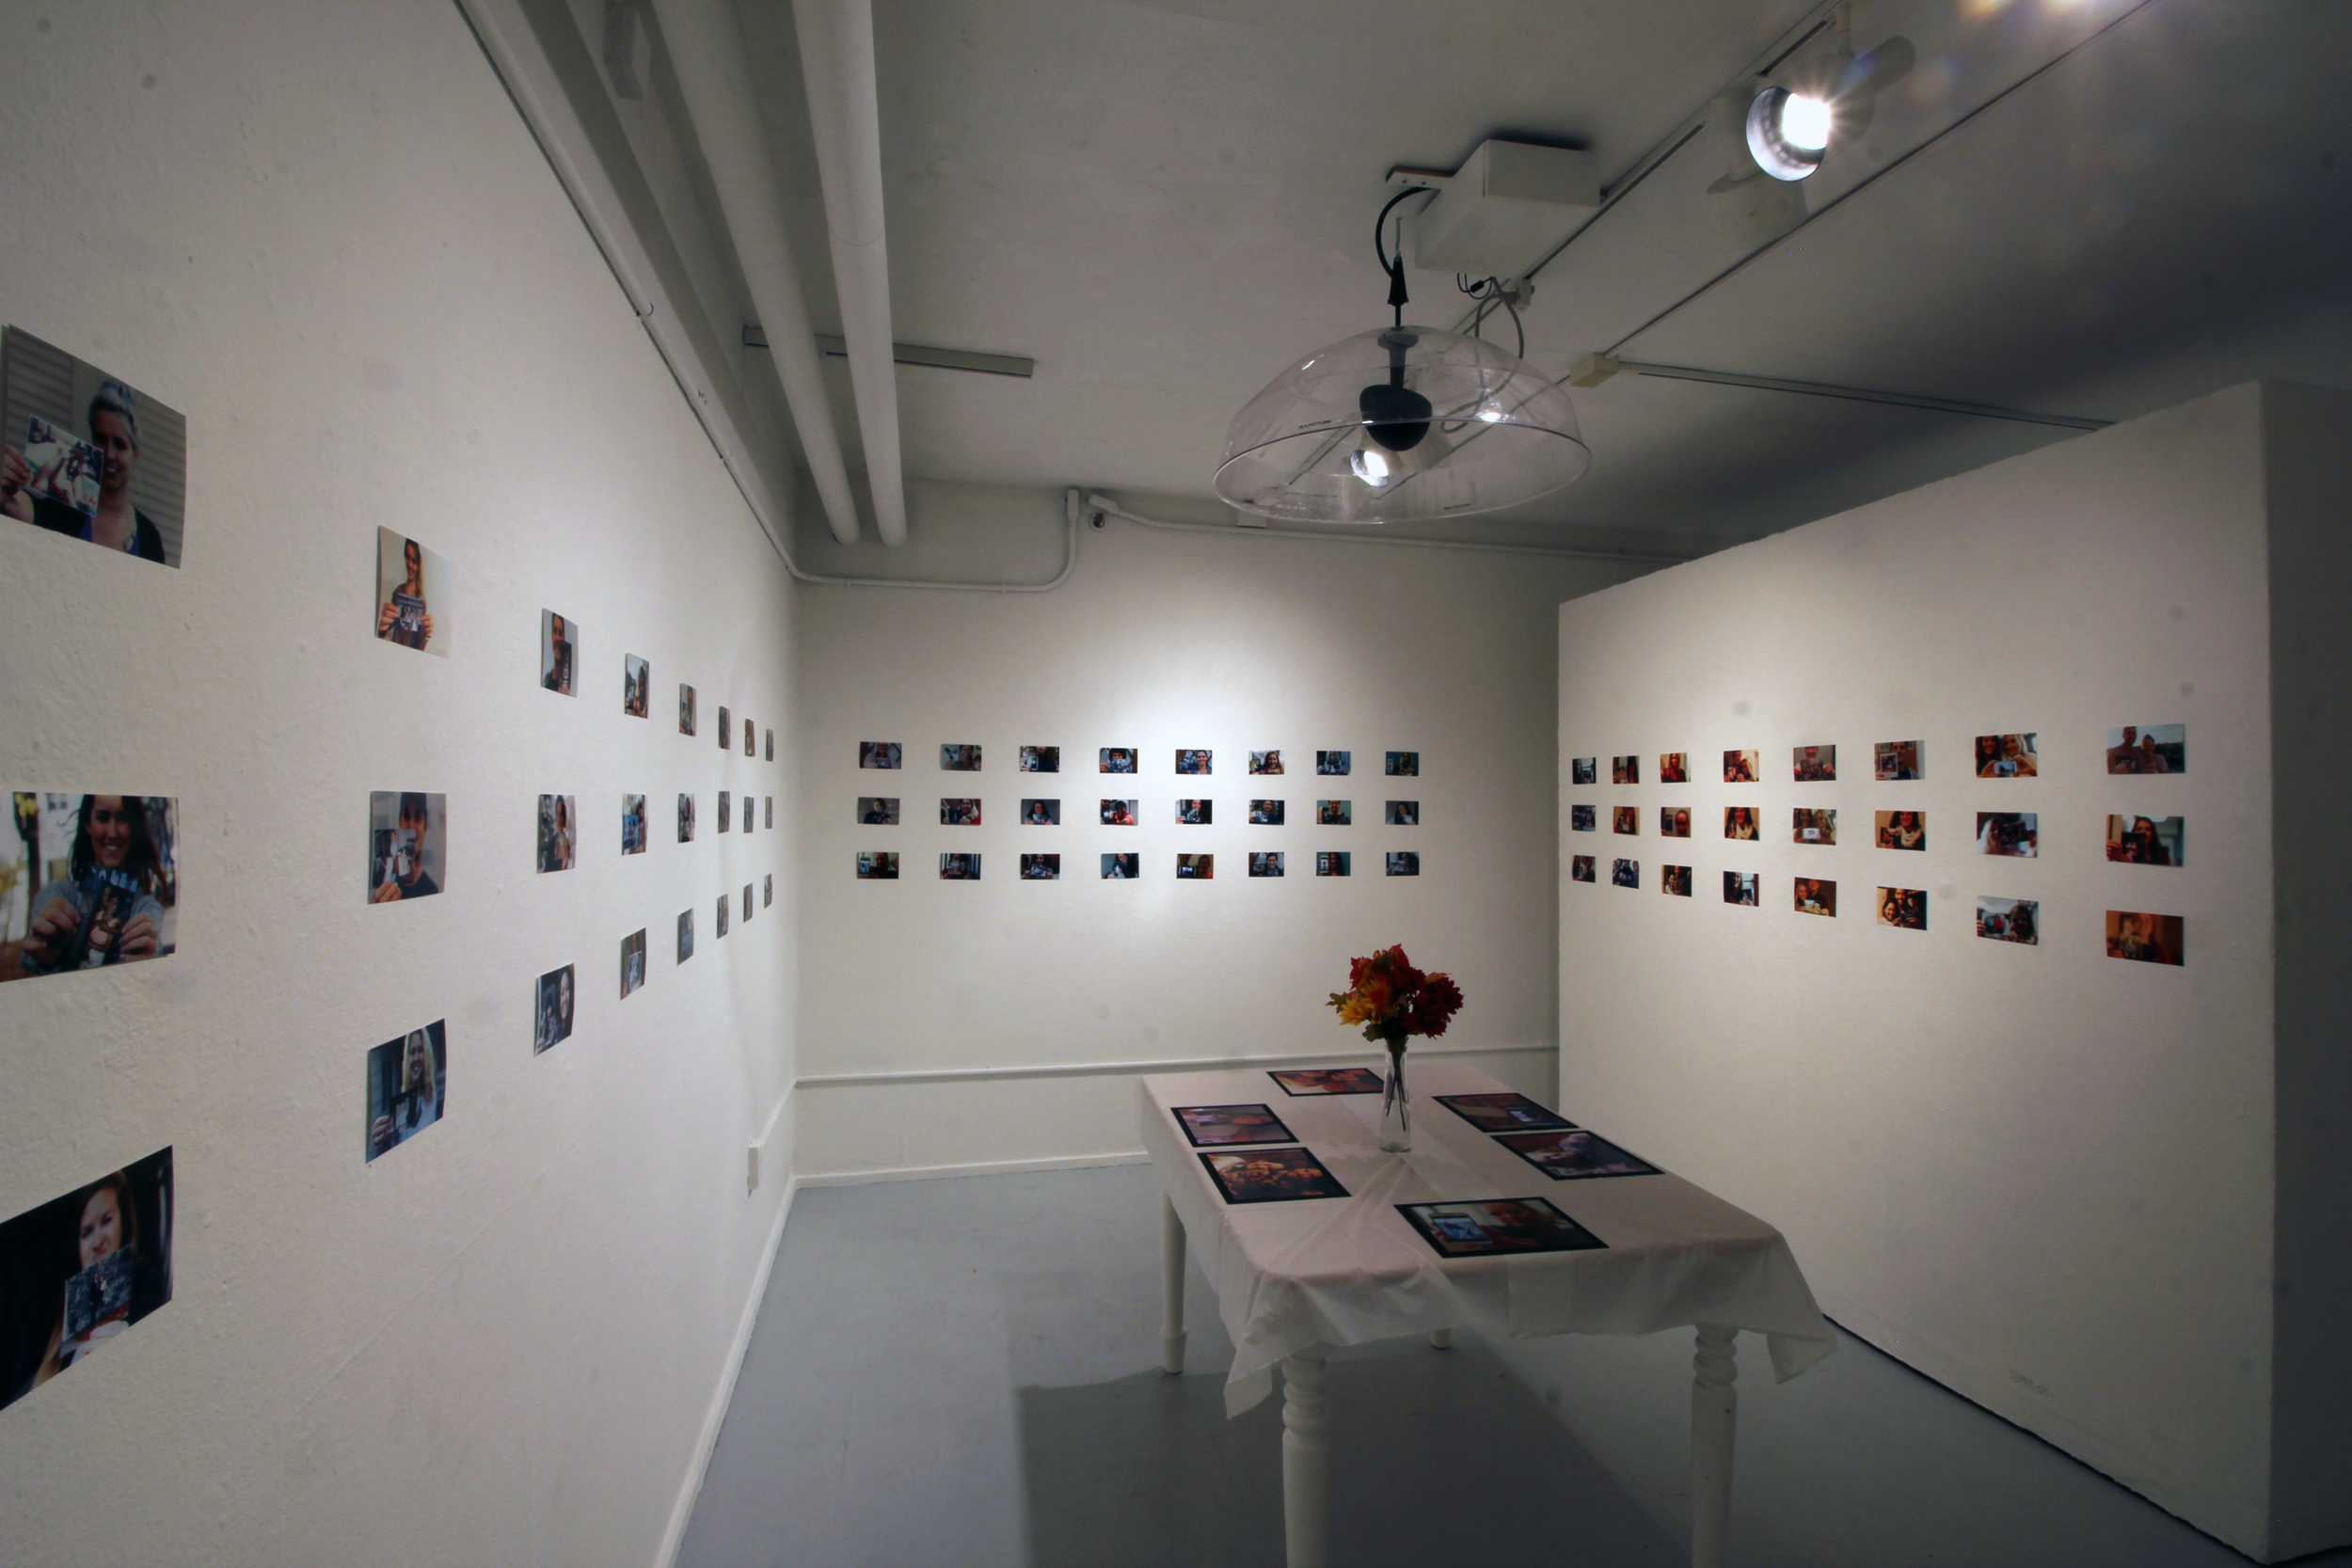 Gallery space